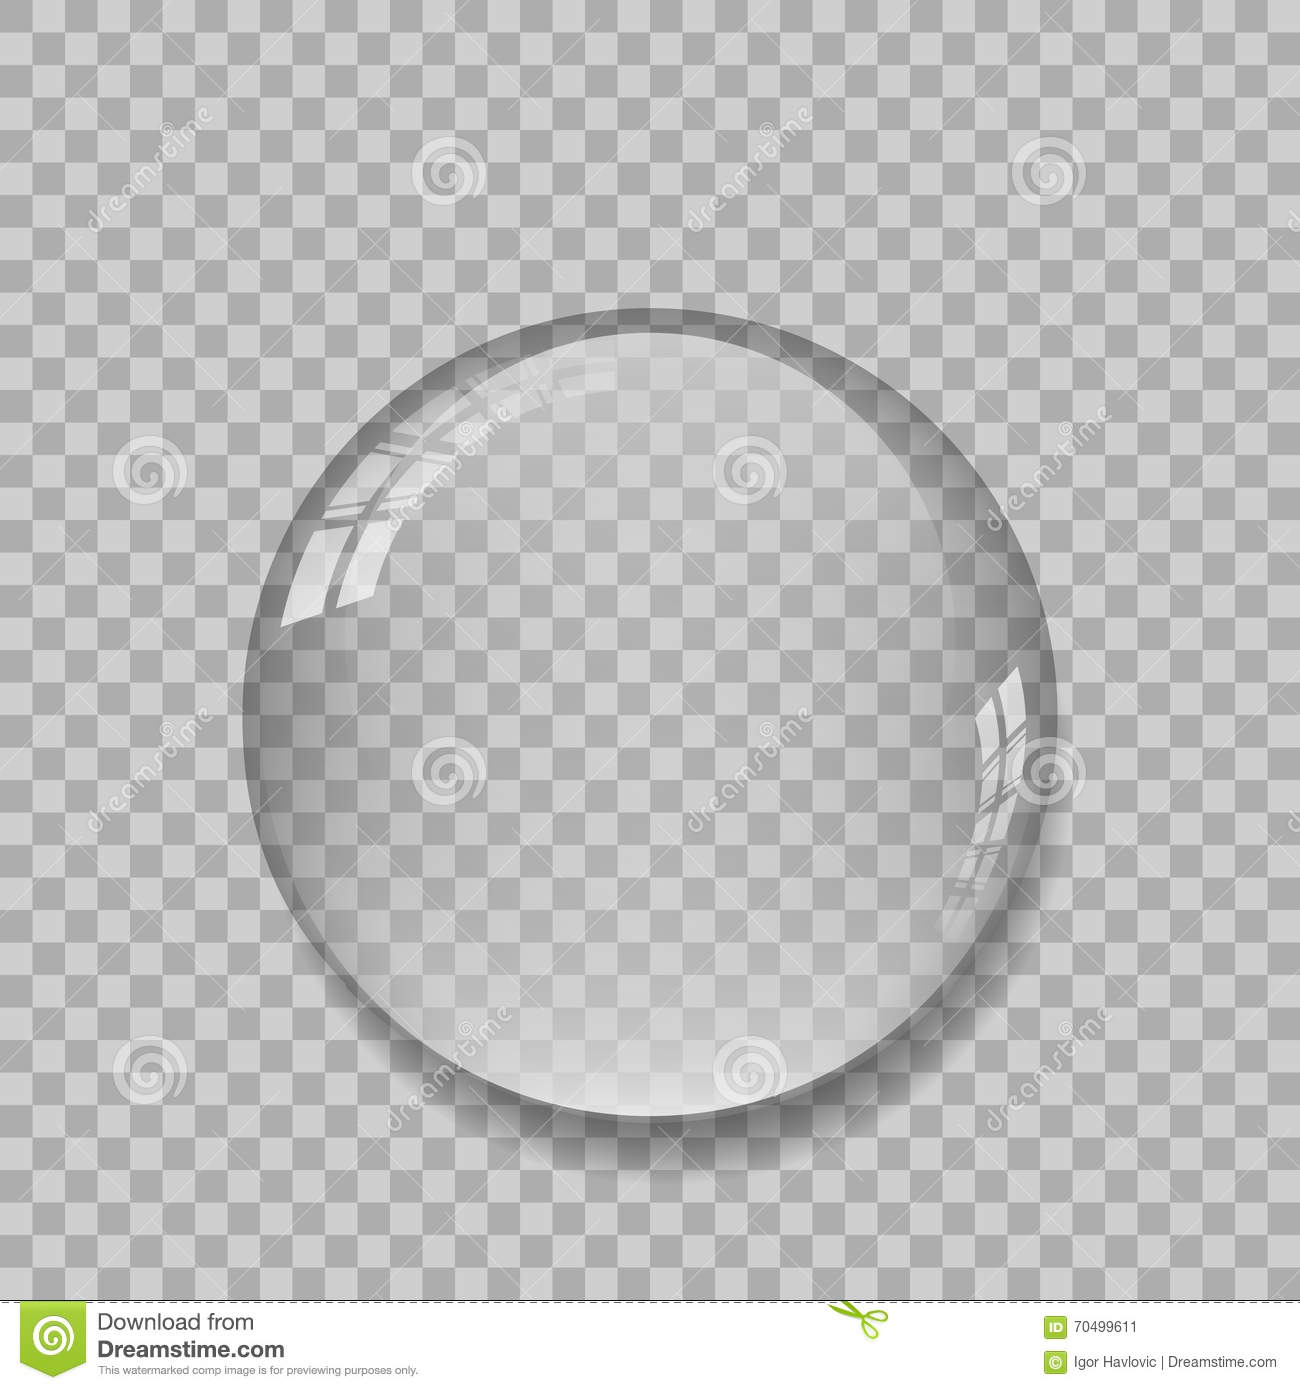 Crystal Ball With Reflections On Transparent Background